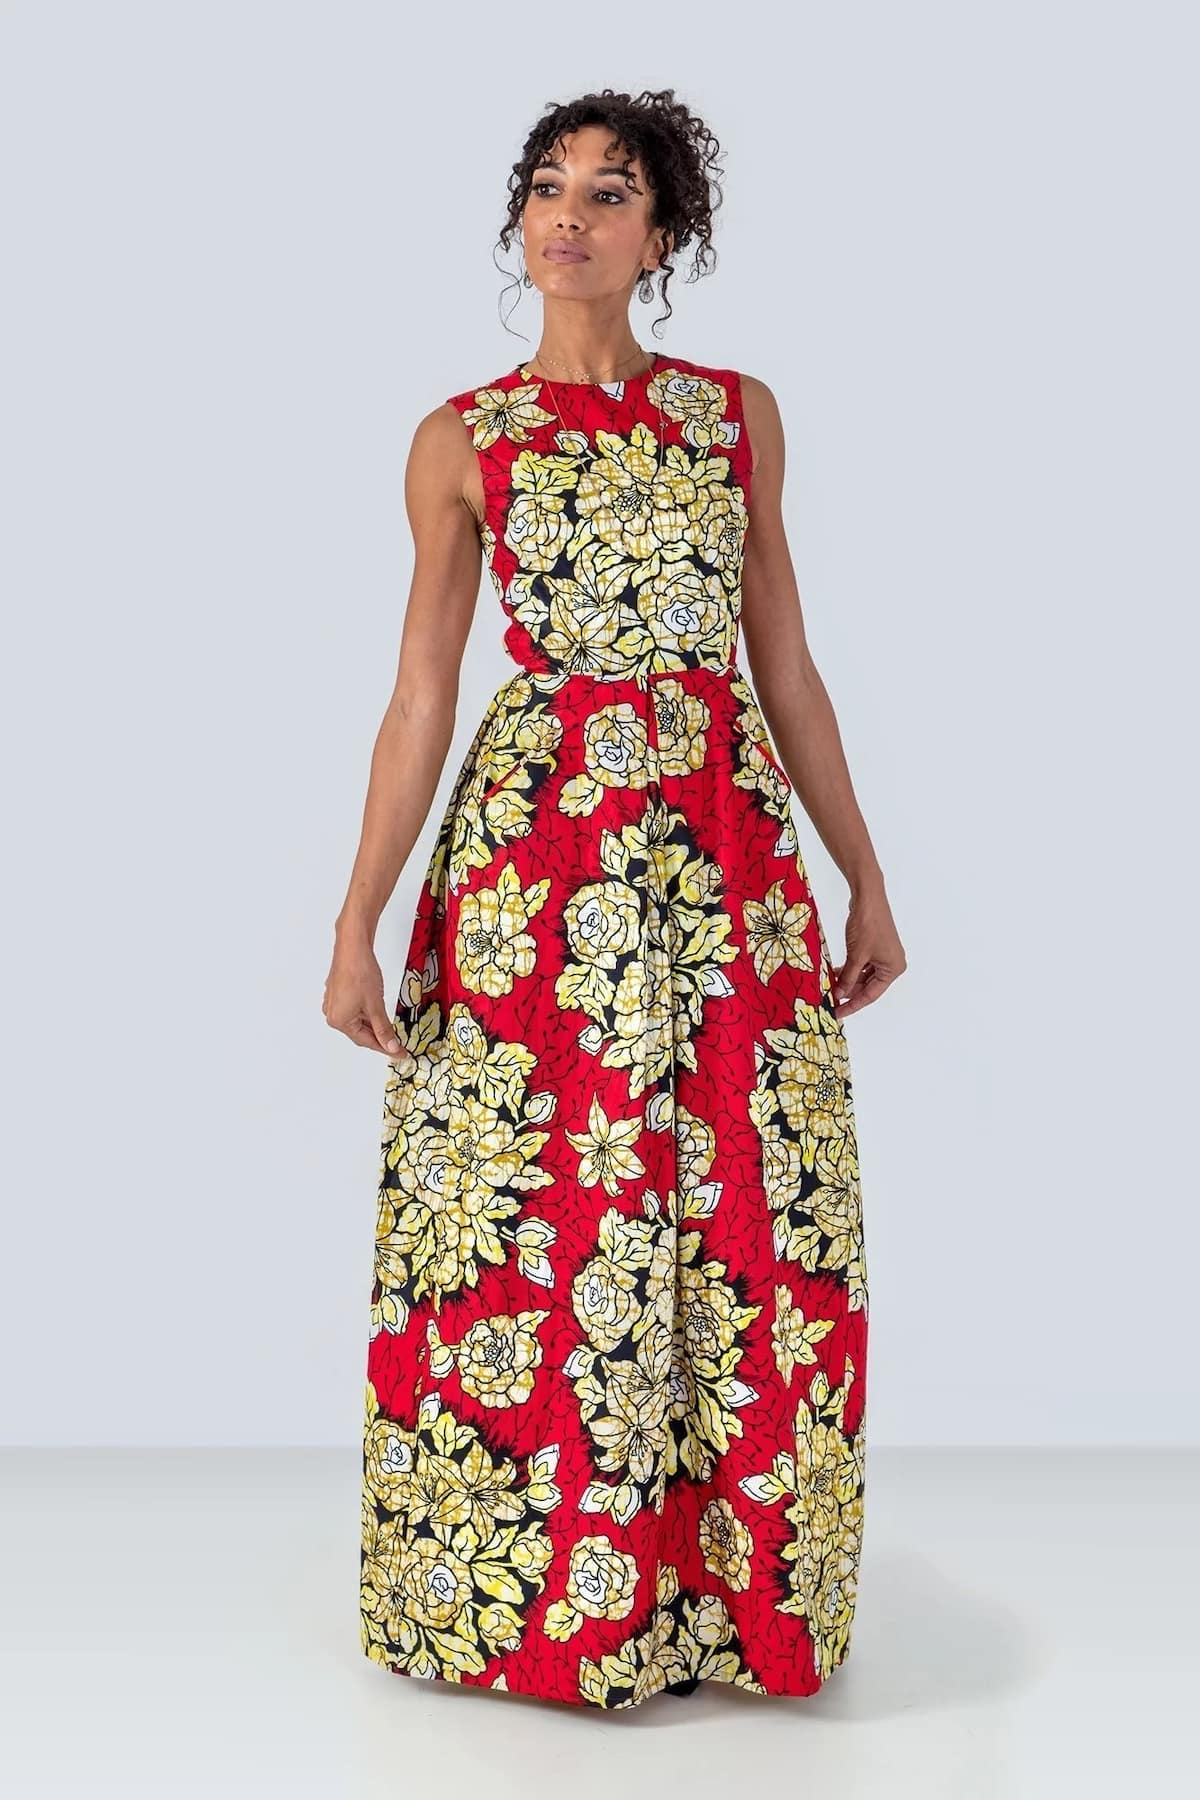 african print and chiffon dresses,african print dresses 2018,african print dresses styles